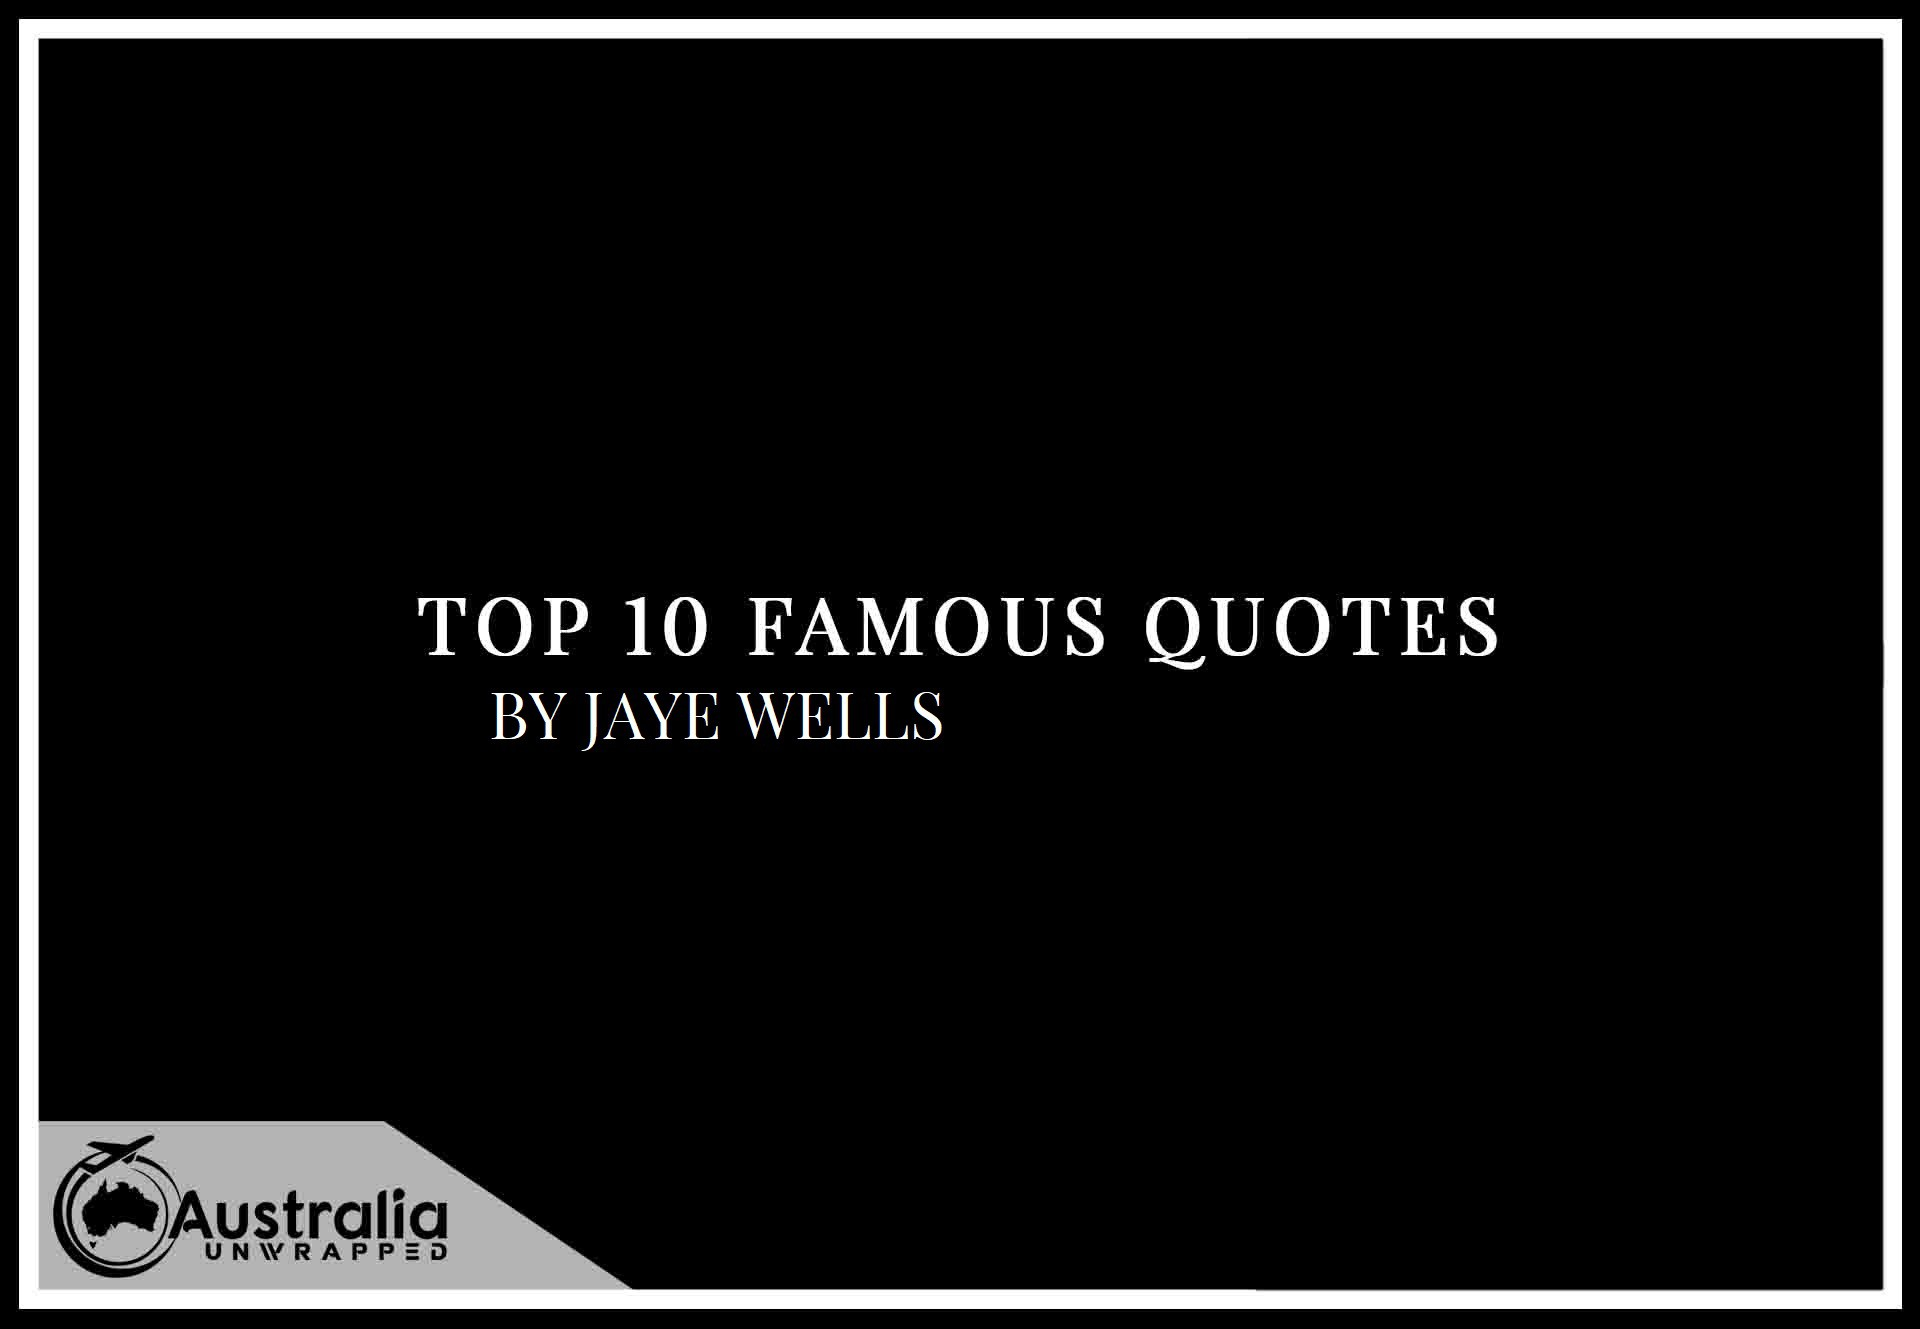 Top 10 Famous Quotes by Author Jaye Wells